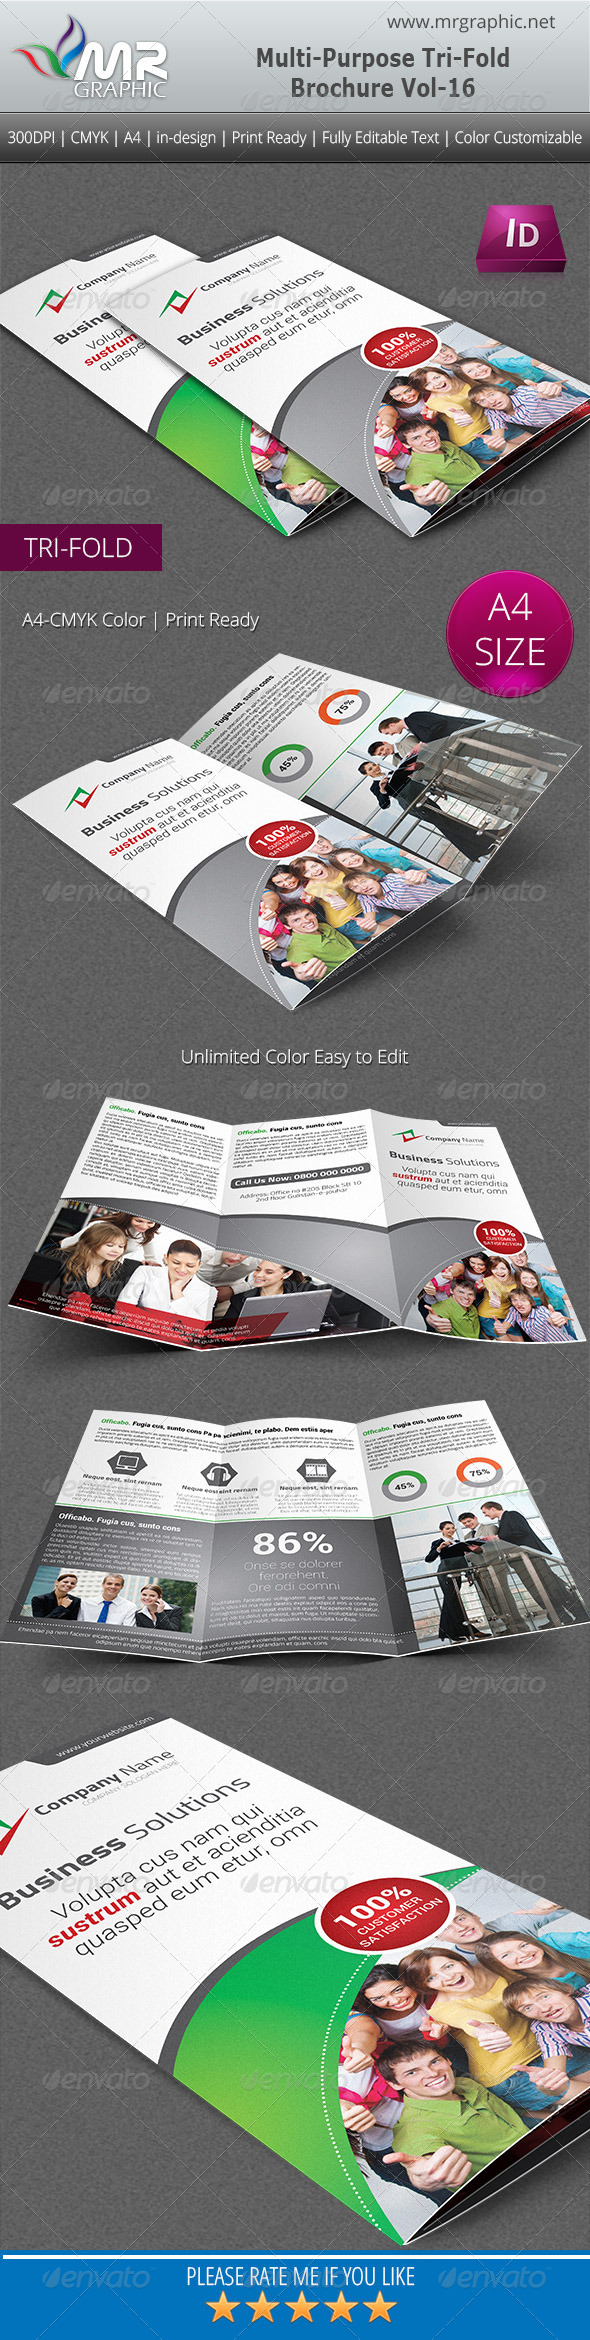 Multipurpose Business Tri-Fold Brochure Vol-16 - Corporate Brochures